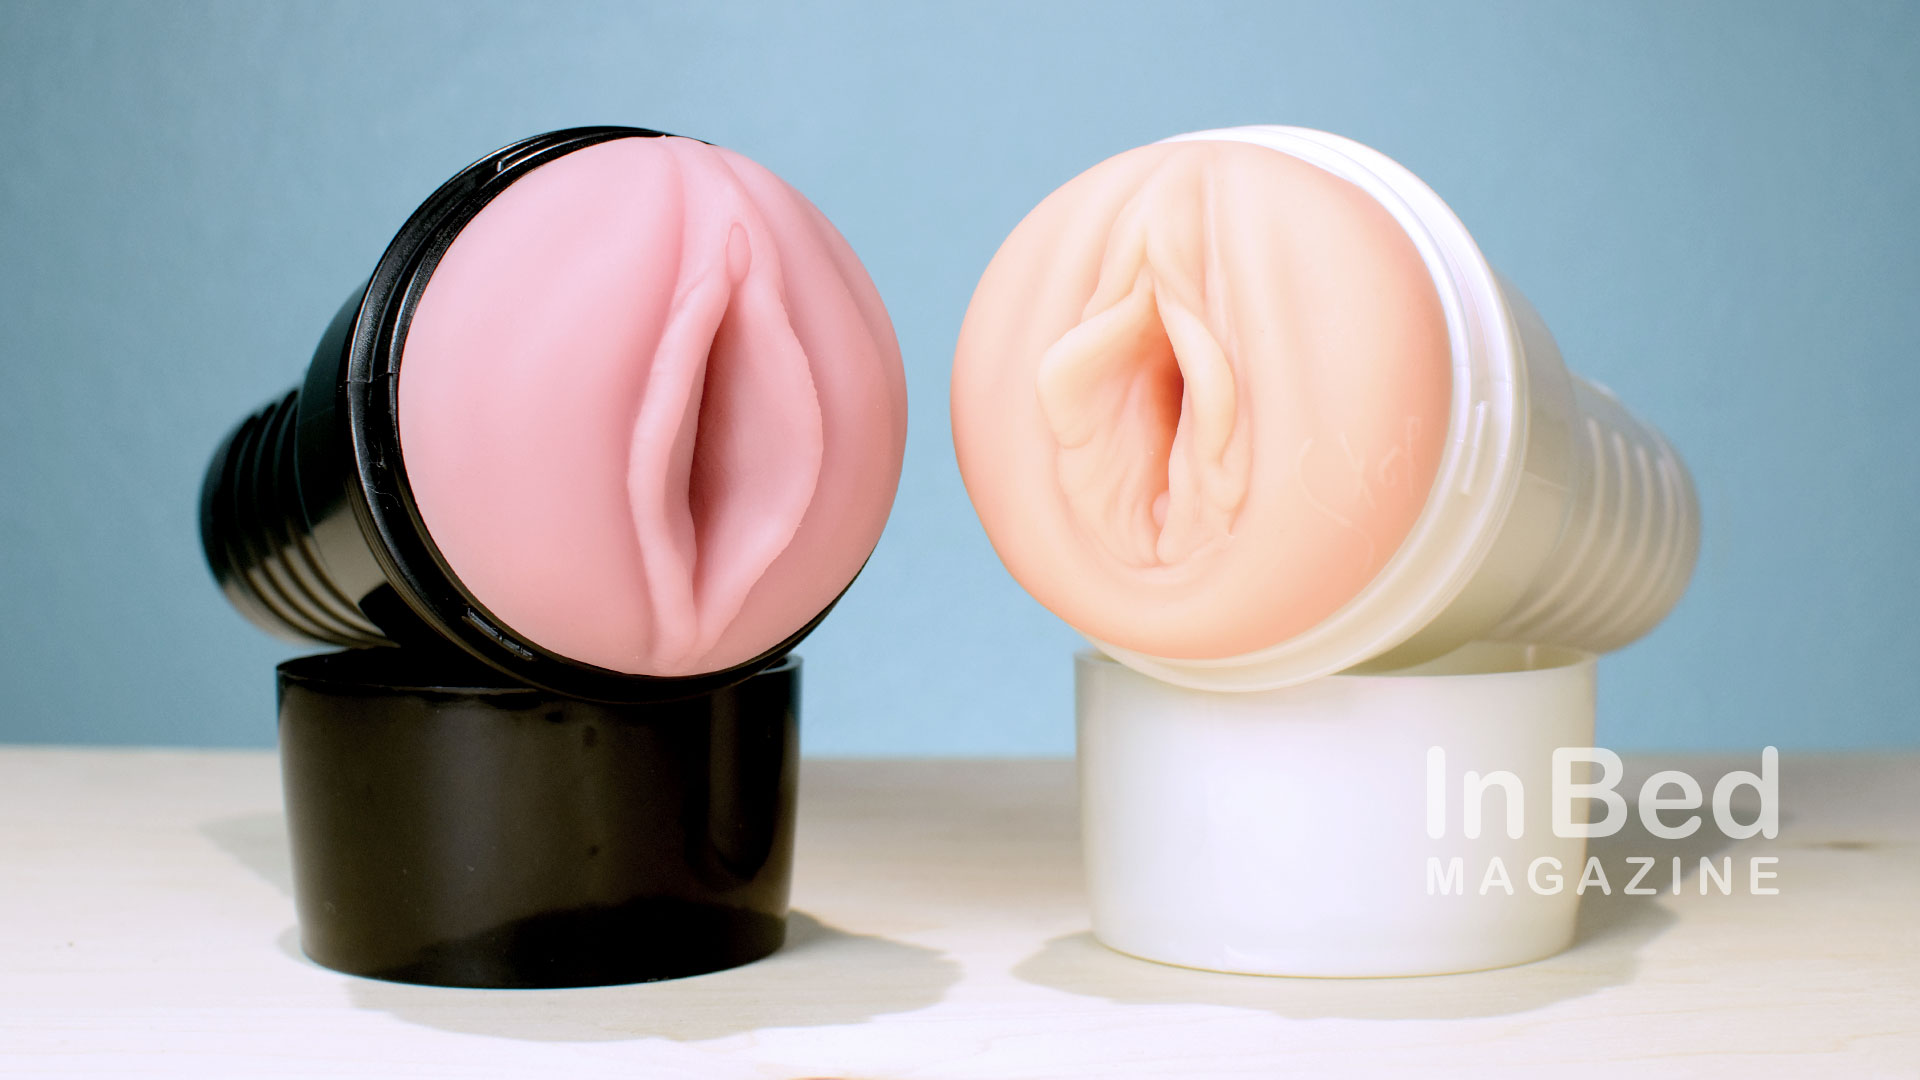 Fleshlight Price To Drop